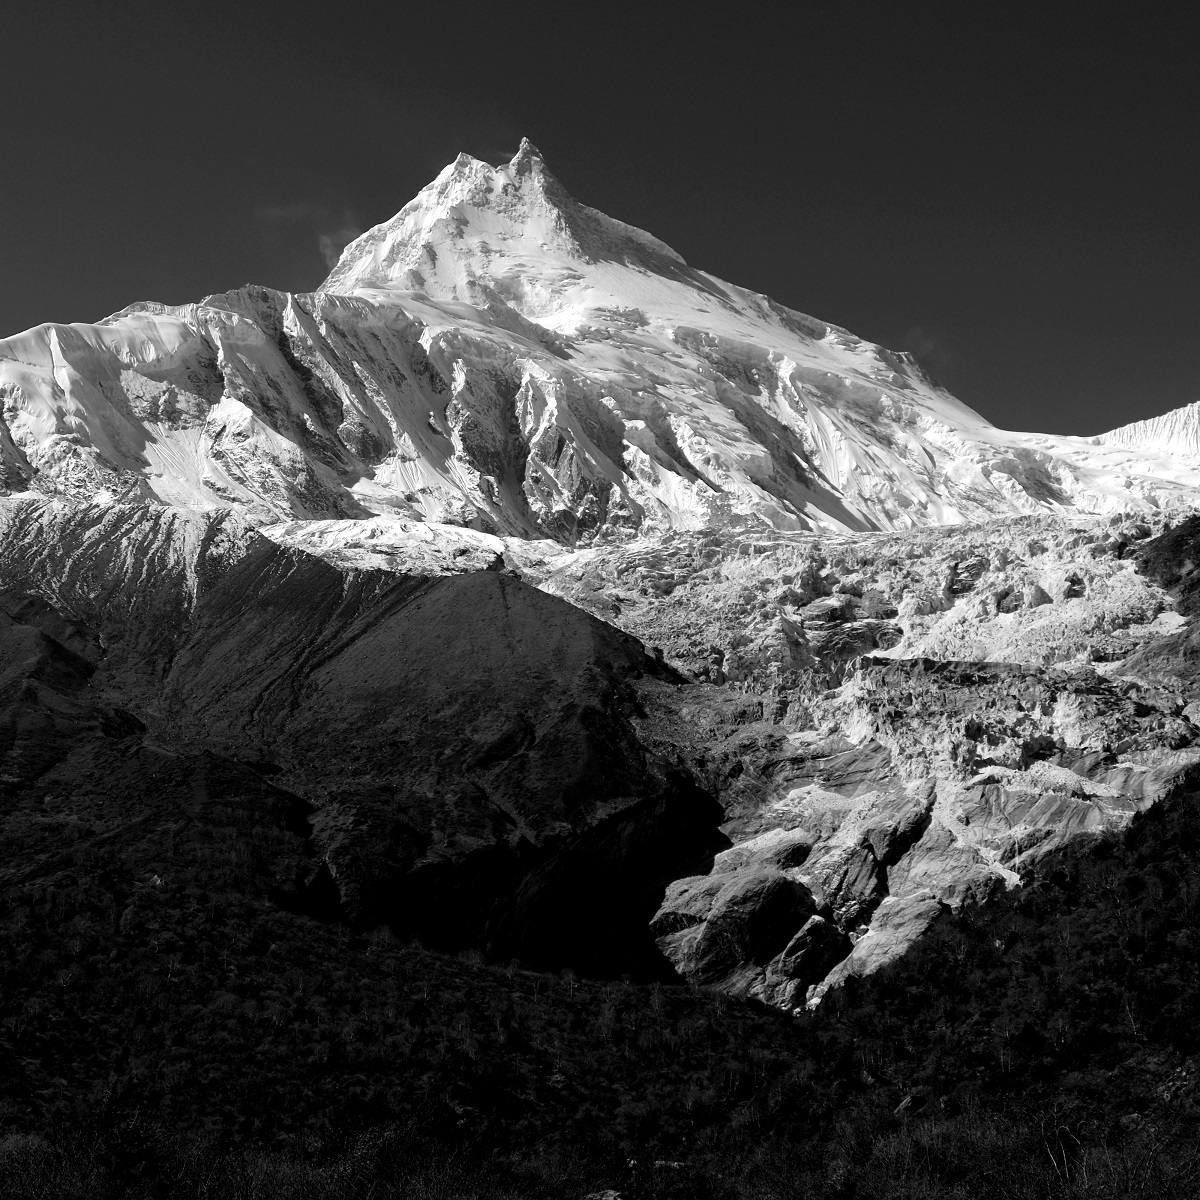 The mountain of the spirit, Manaslu is the eighth-highest mountain in the world at 8,163 meters above the sea level.